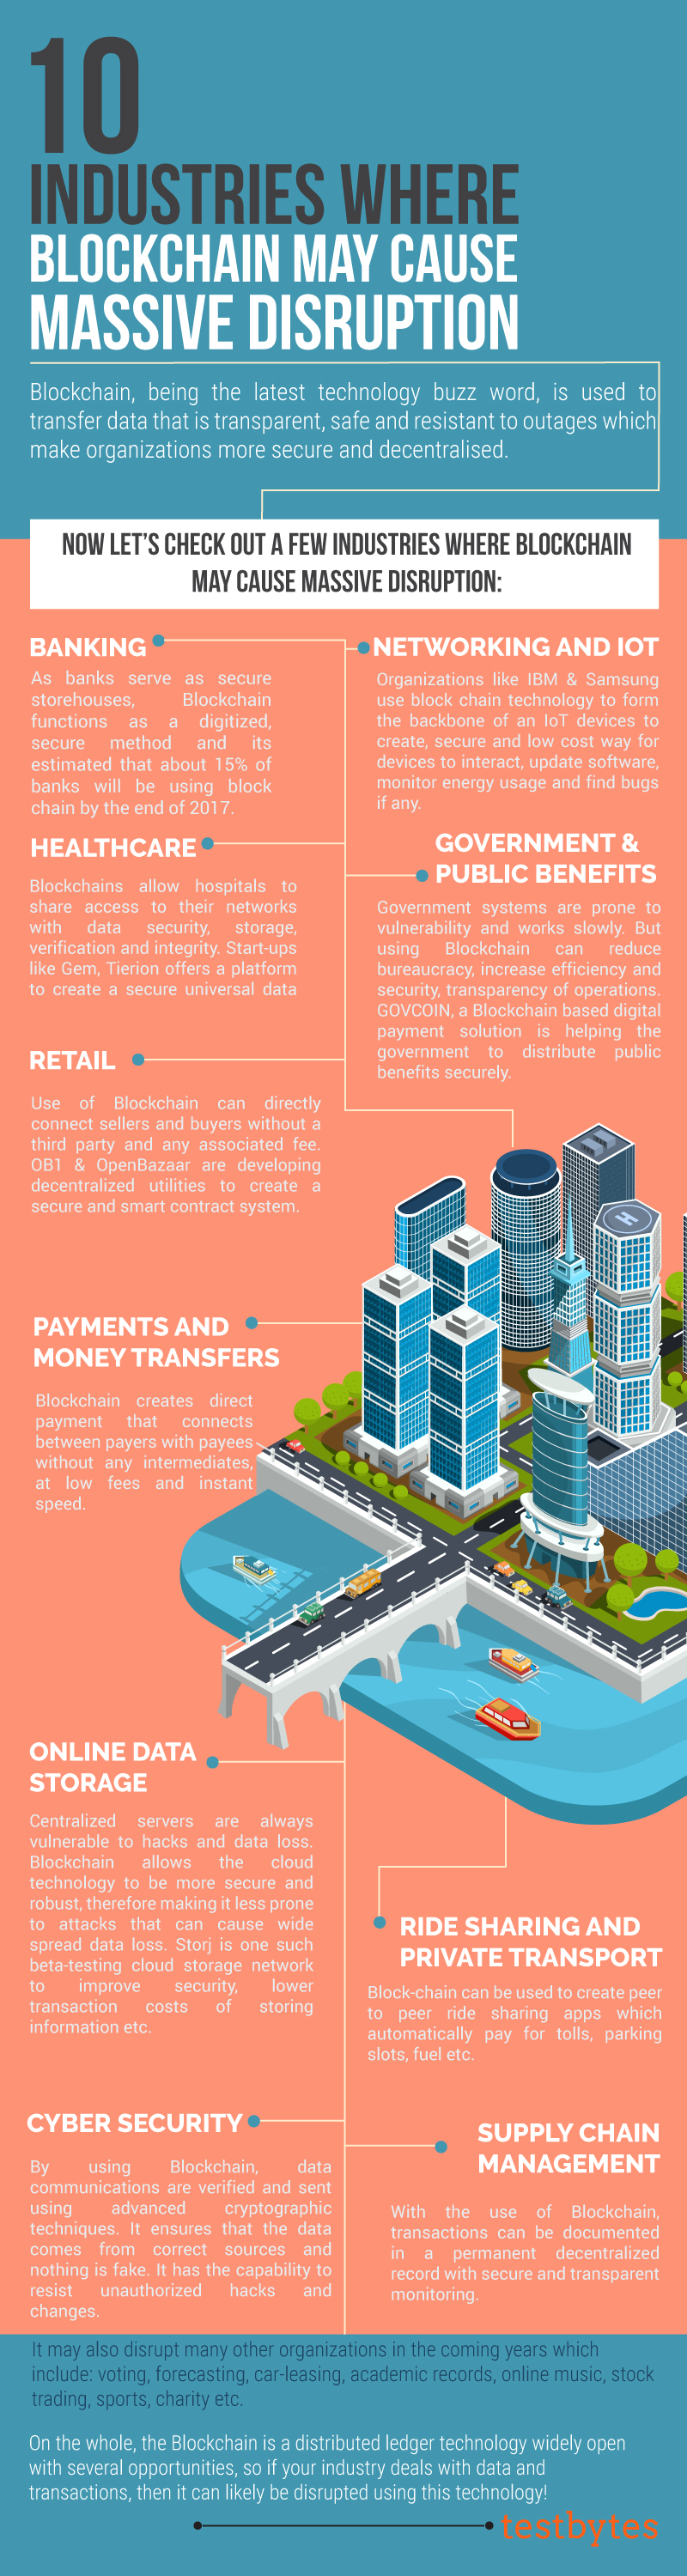 blockchain applications infographic